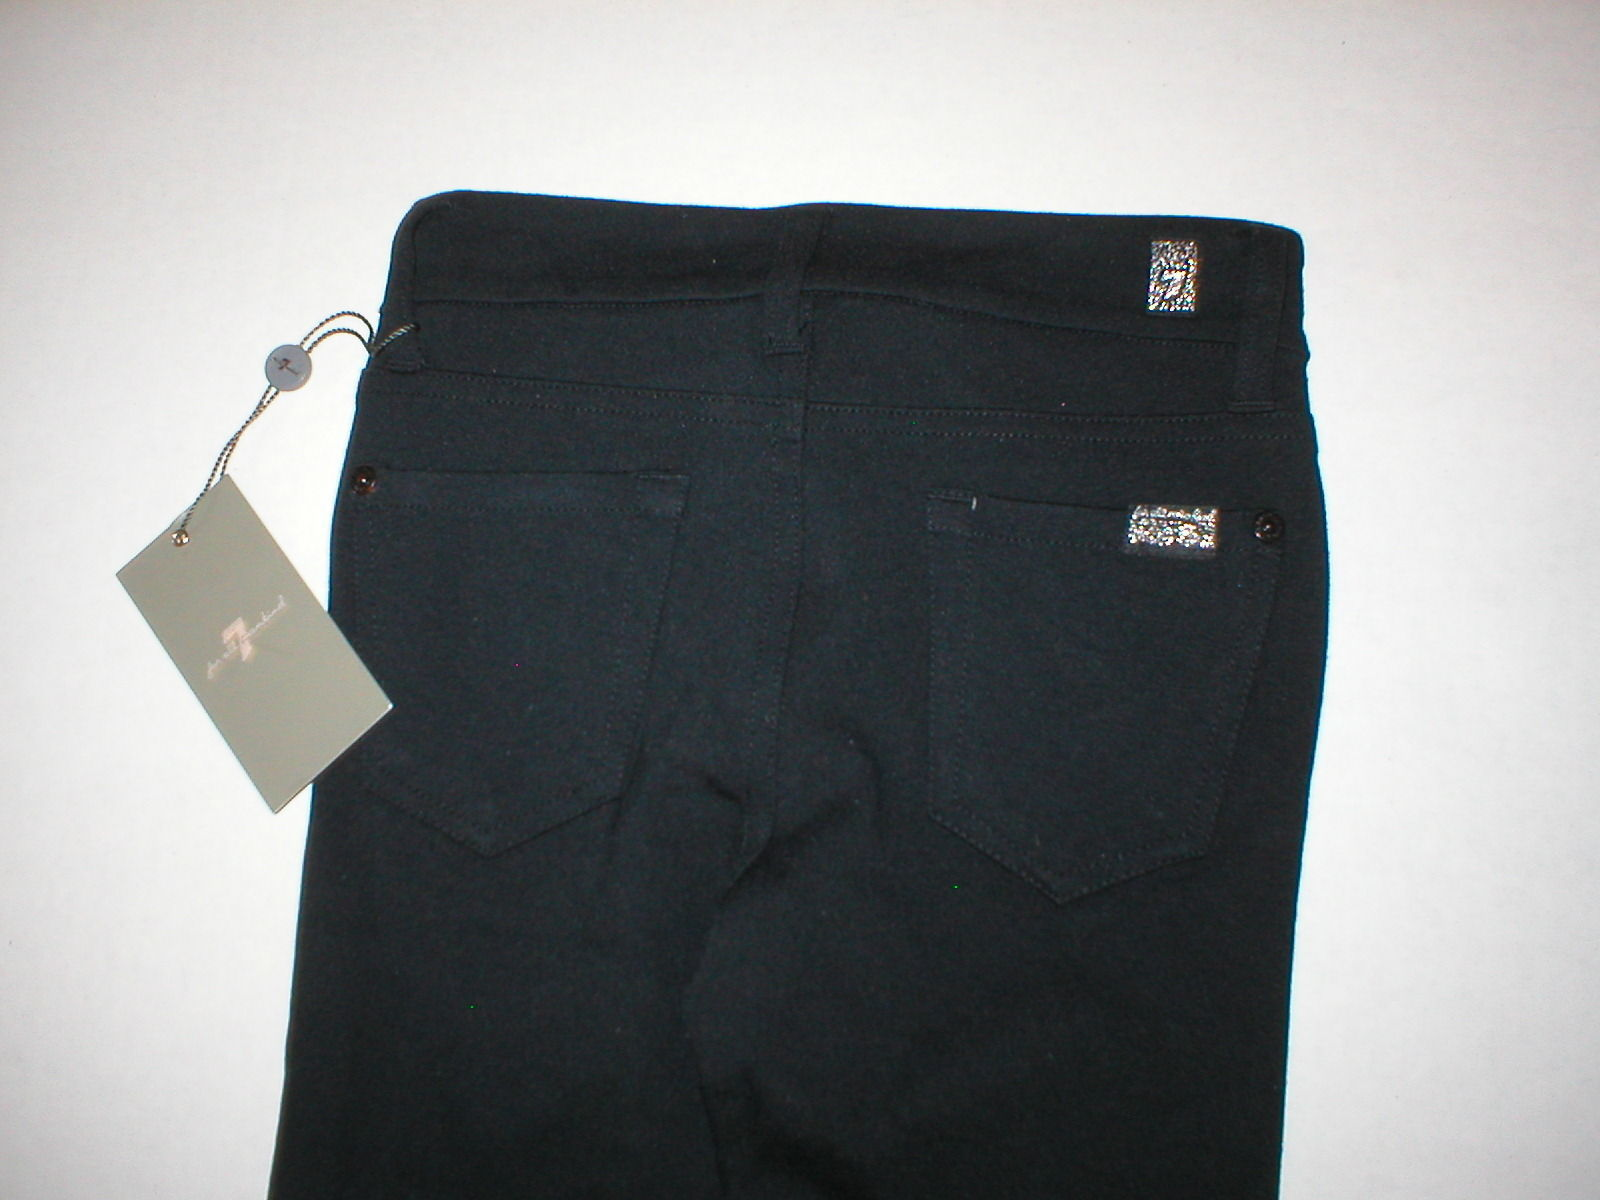 New Girls Jeans The Skinny 7 for all mankind 12 NWT Leggings Black Pants Rayon